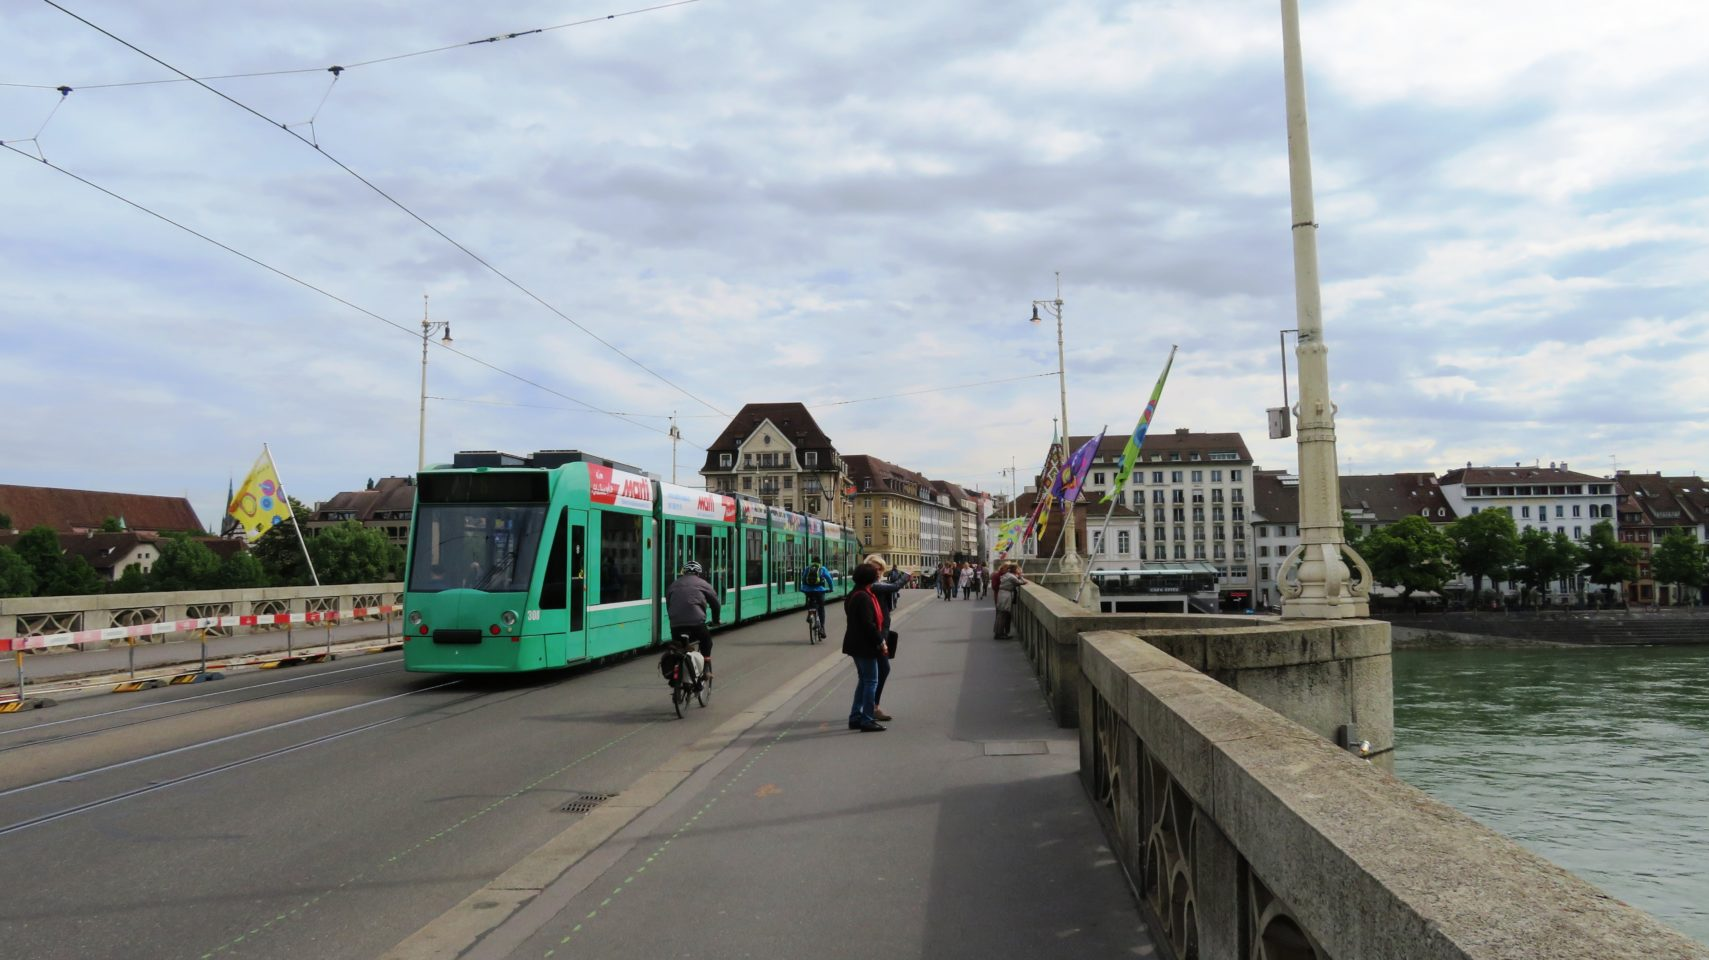 Tram on the Mittlere Brucke in Basel, Switzerland